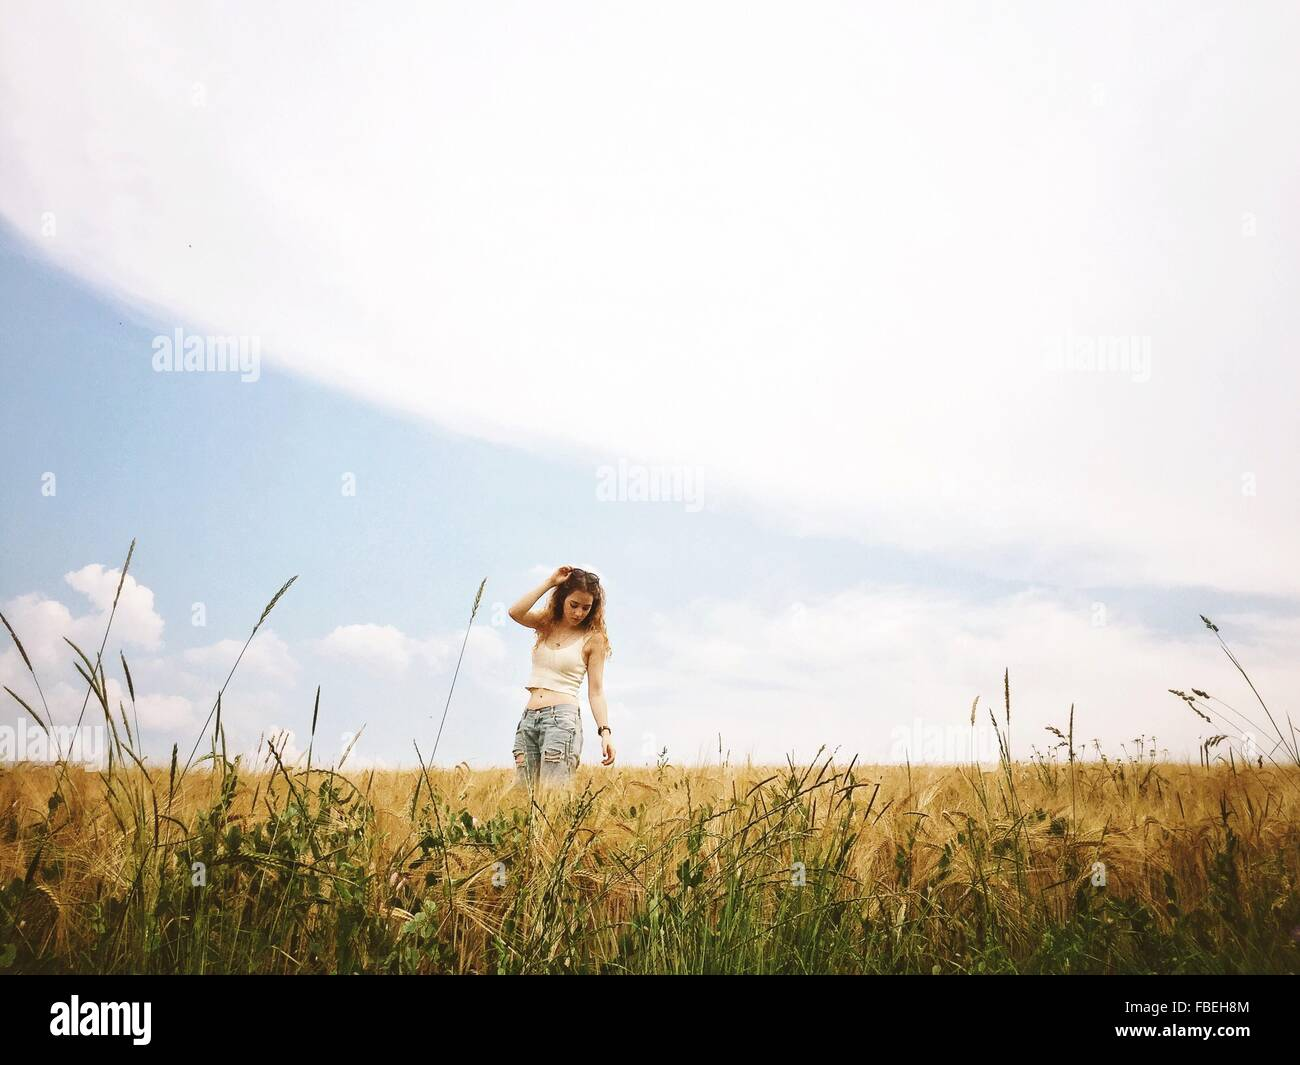 Young Woman Standing On Wheat Field - Stock Image